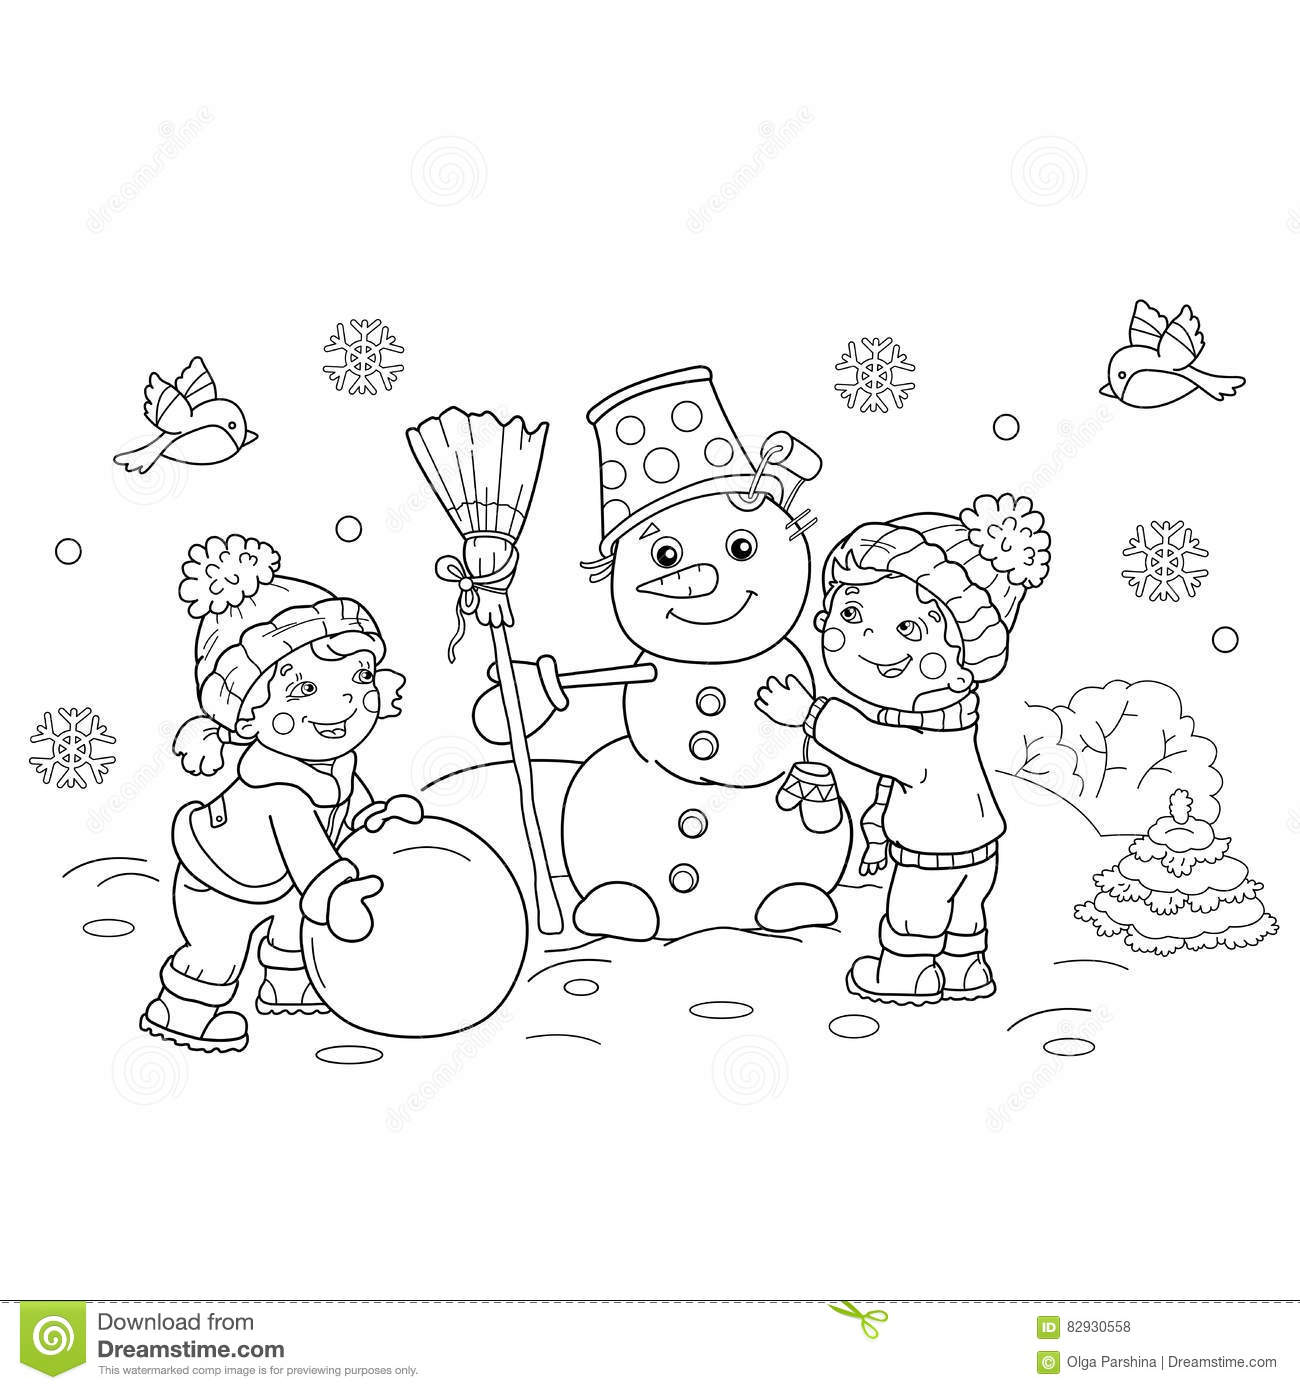 Coloring Page Outline Of Cartoon Boy With Girl Making Snowman Royalty Free Stock Photos